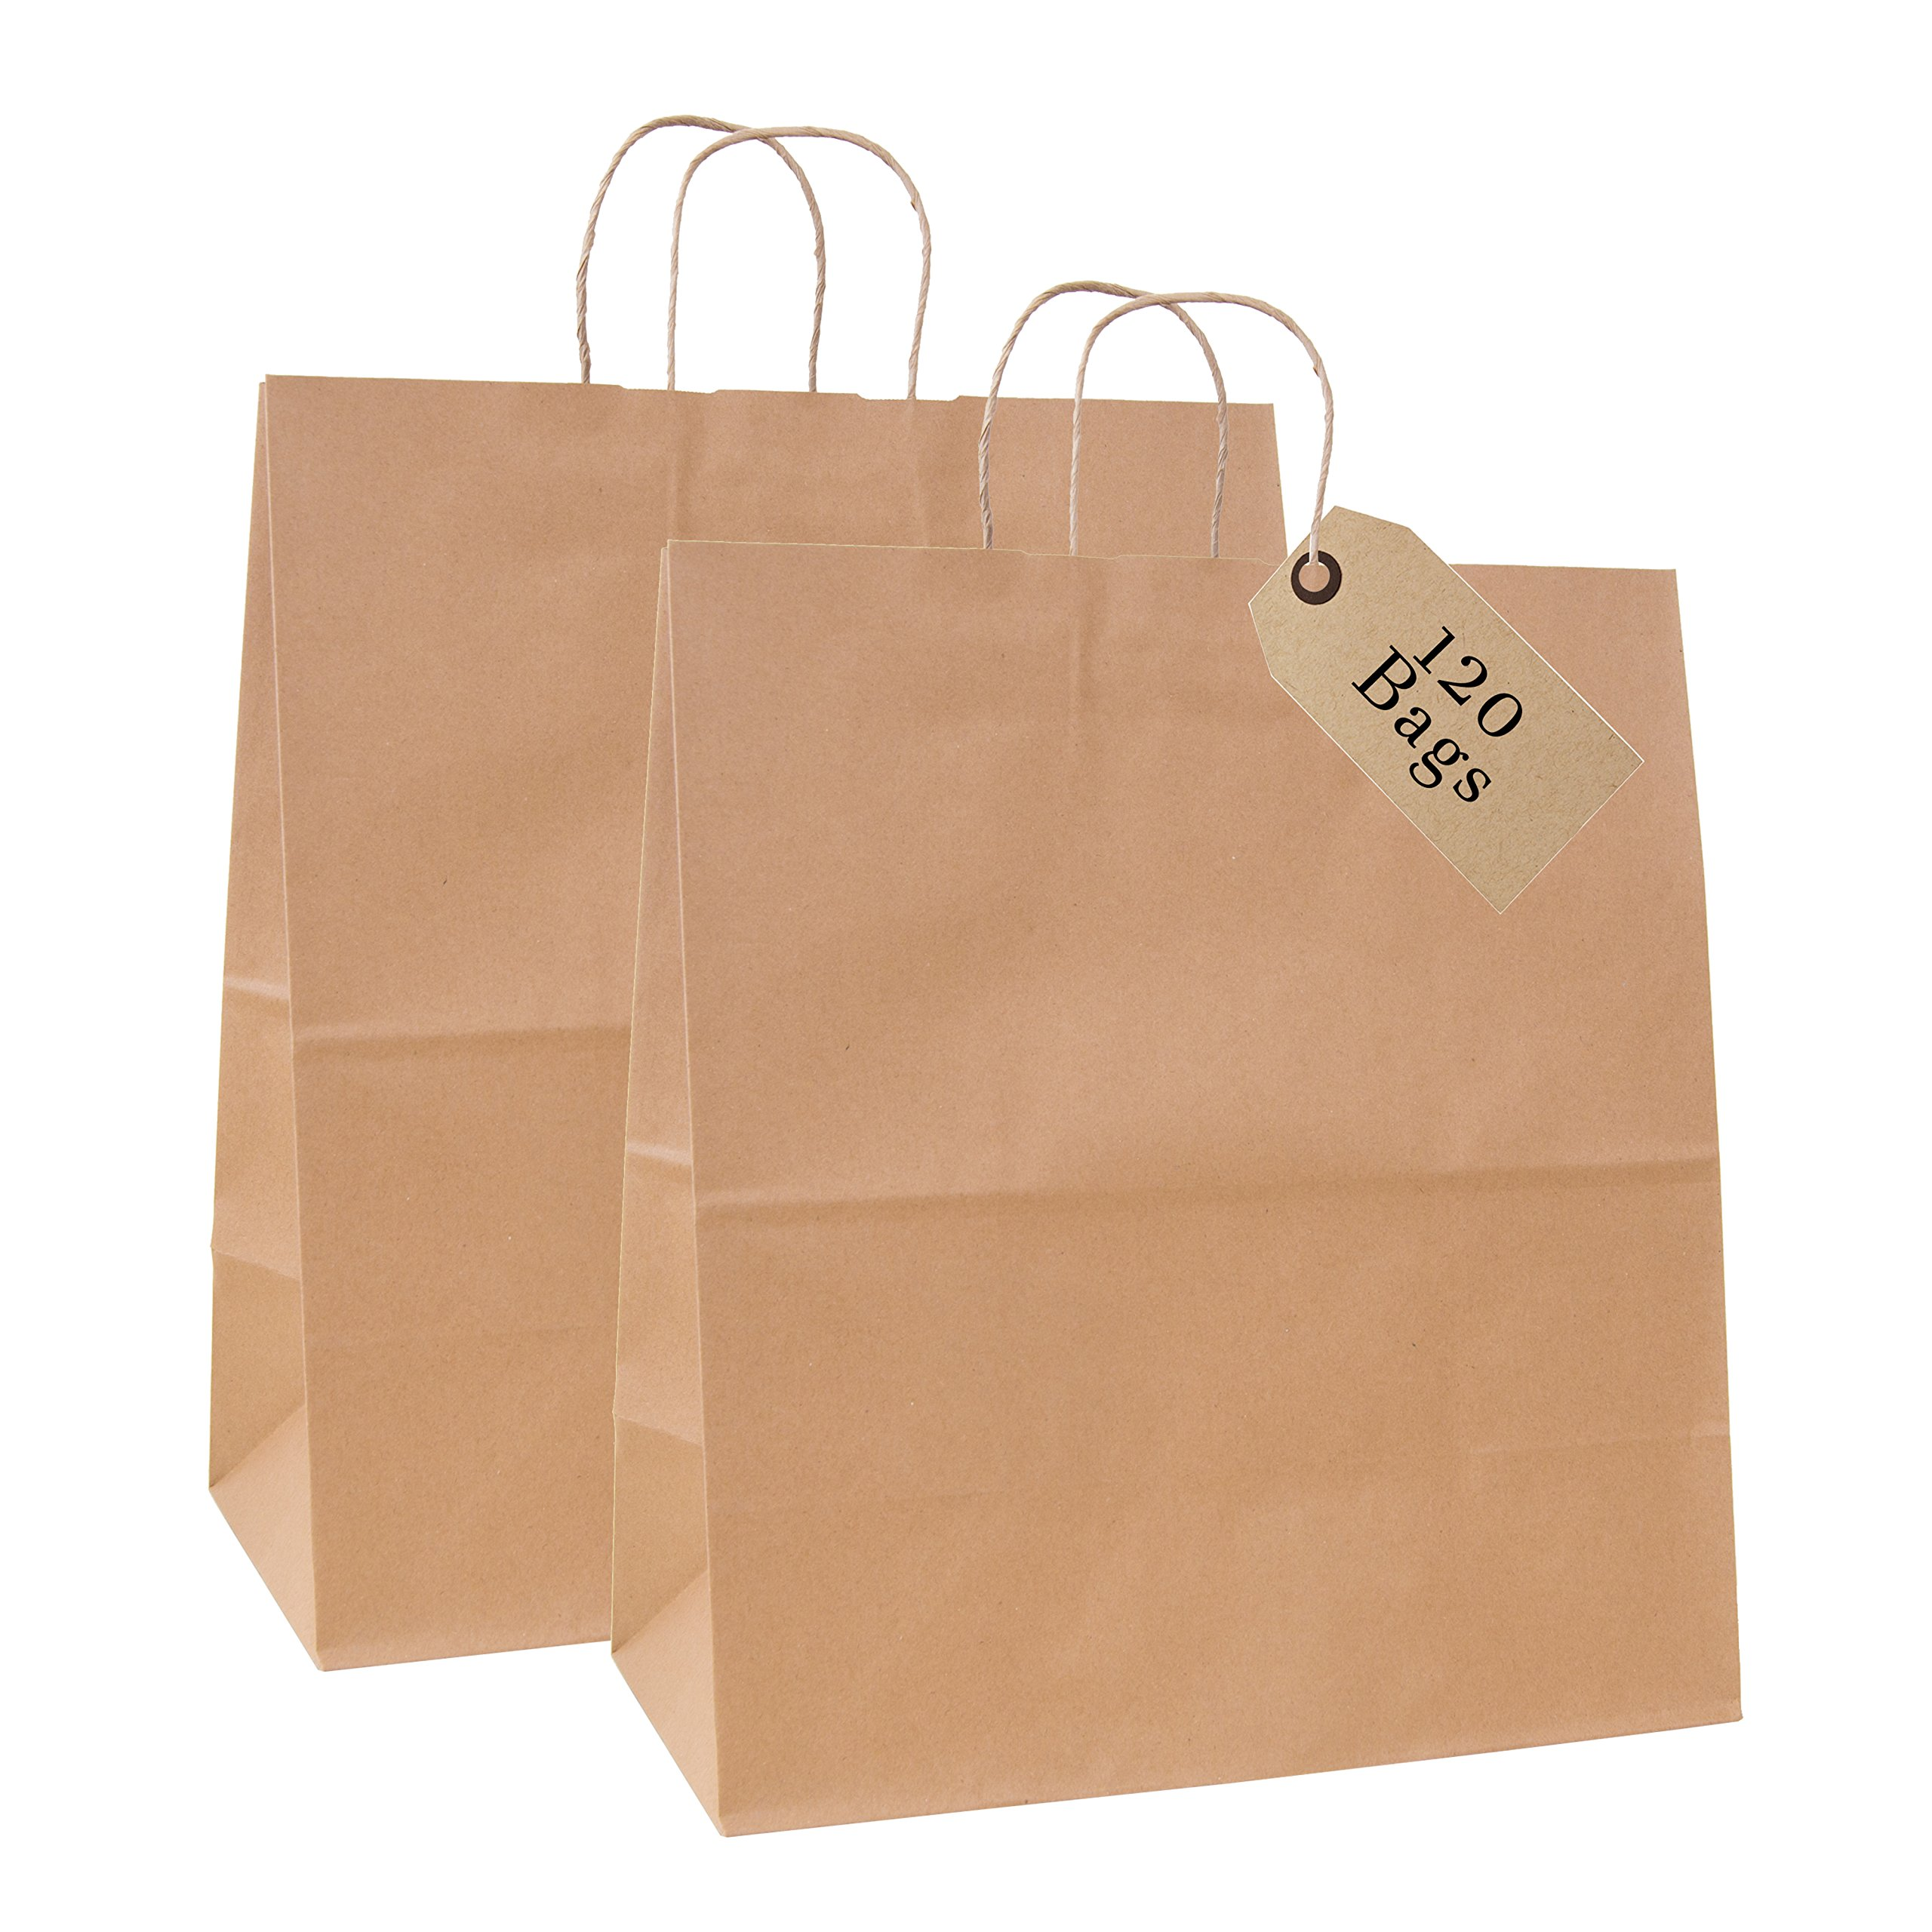 Incredible Packaging - 18'' x 7'' x 18'' Jumbo Kraft Paper Bags with Handles for Shopping, Retail and Merchandise. Strong and Reusable - 80 Paper Thickness- 100% Recycled (120, Brown)